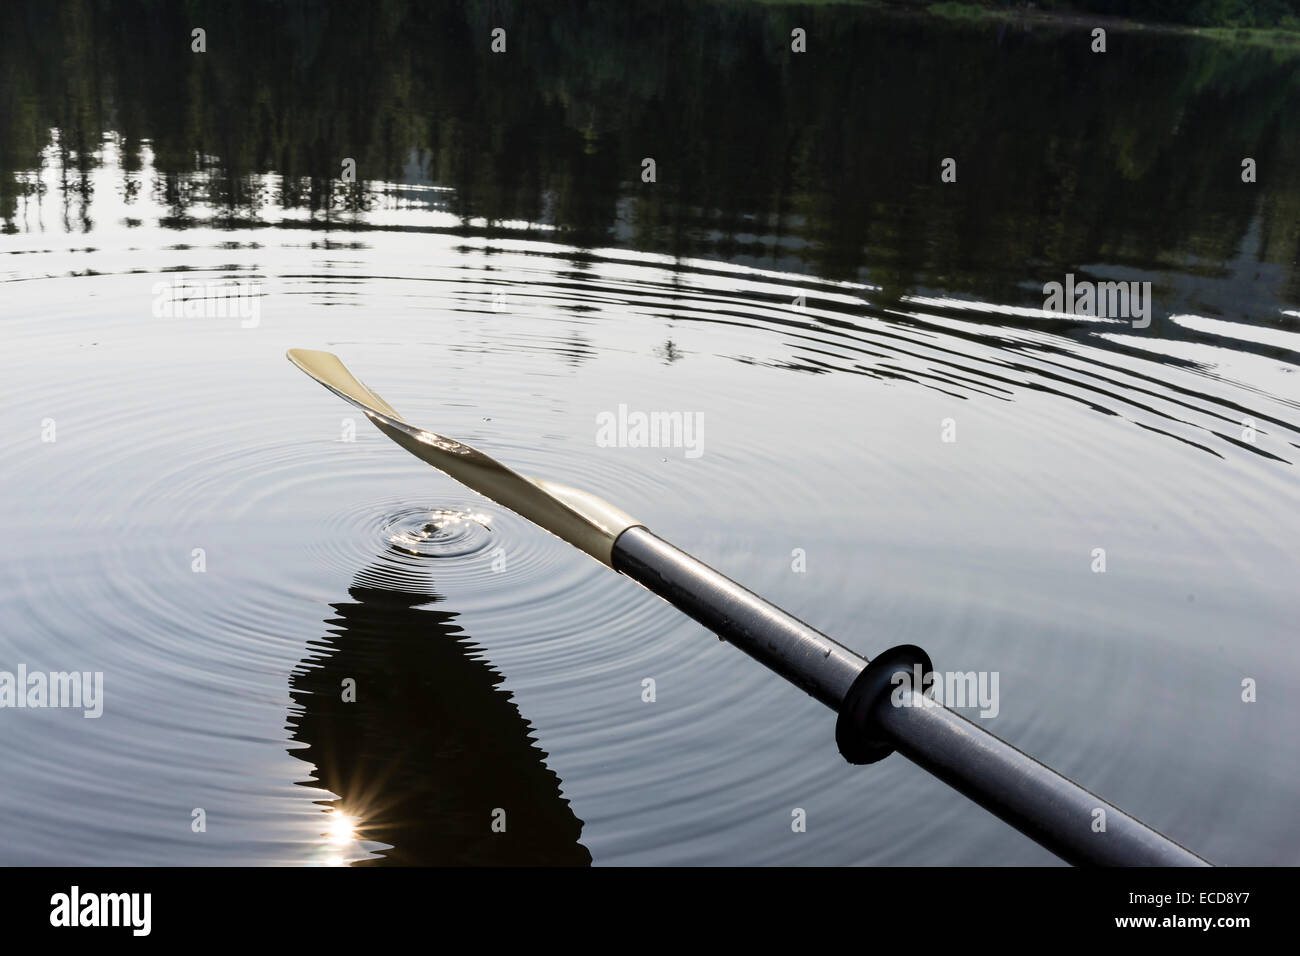 An oar hanging over lake - Stock Image